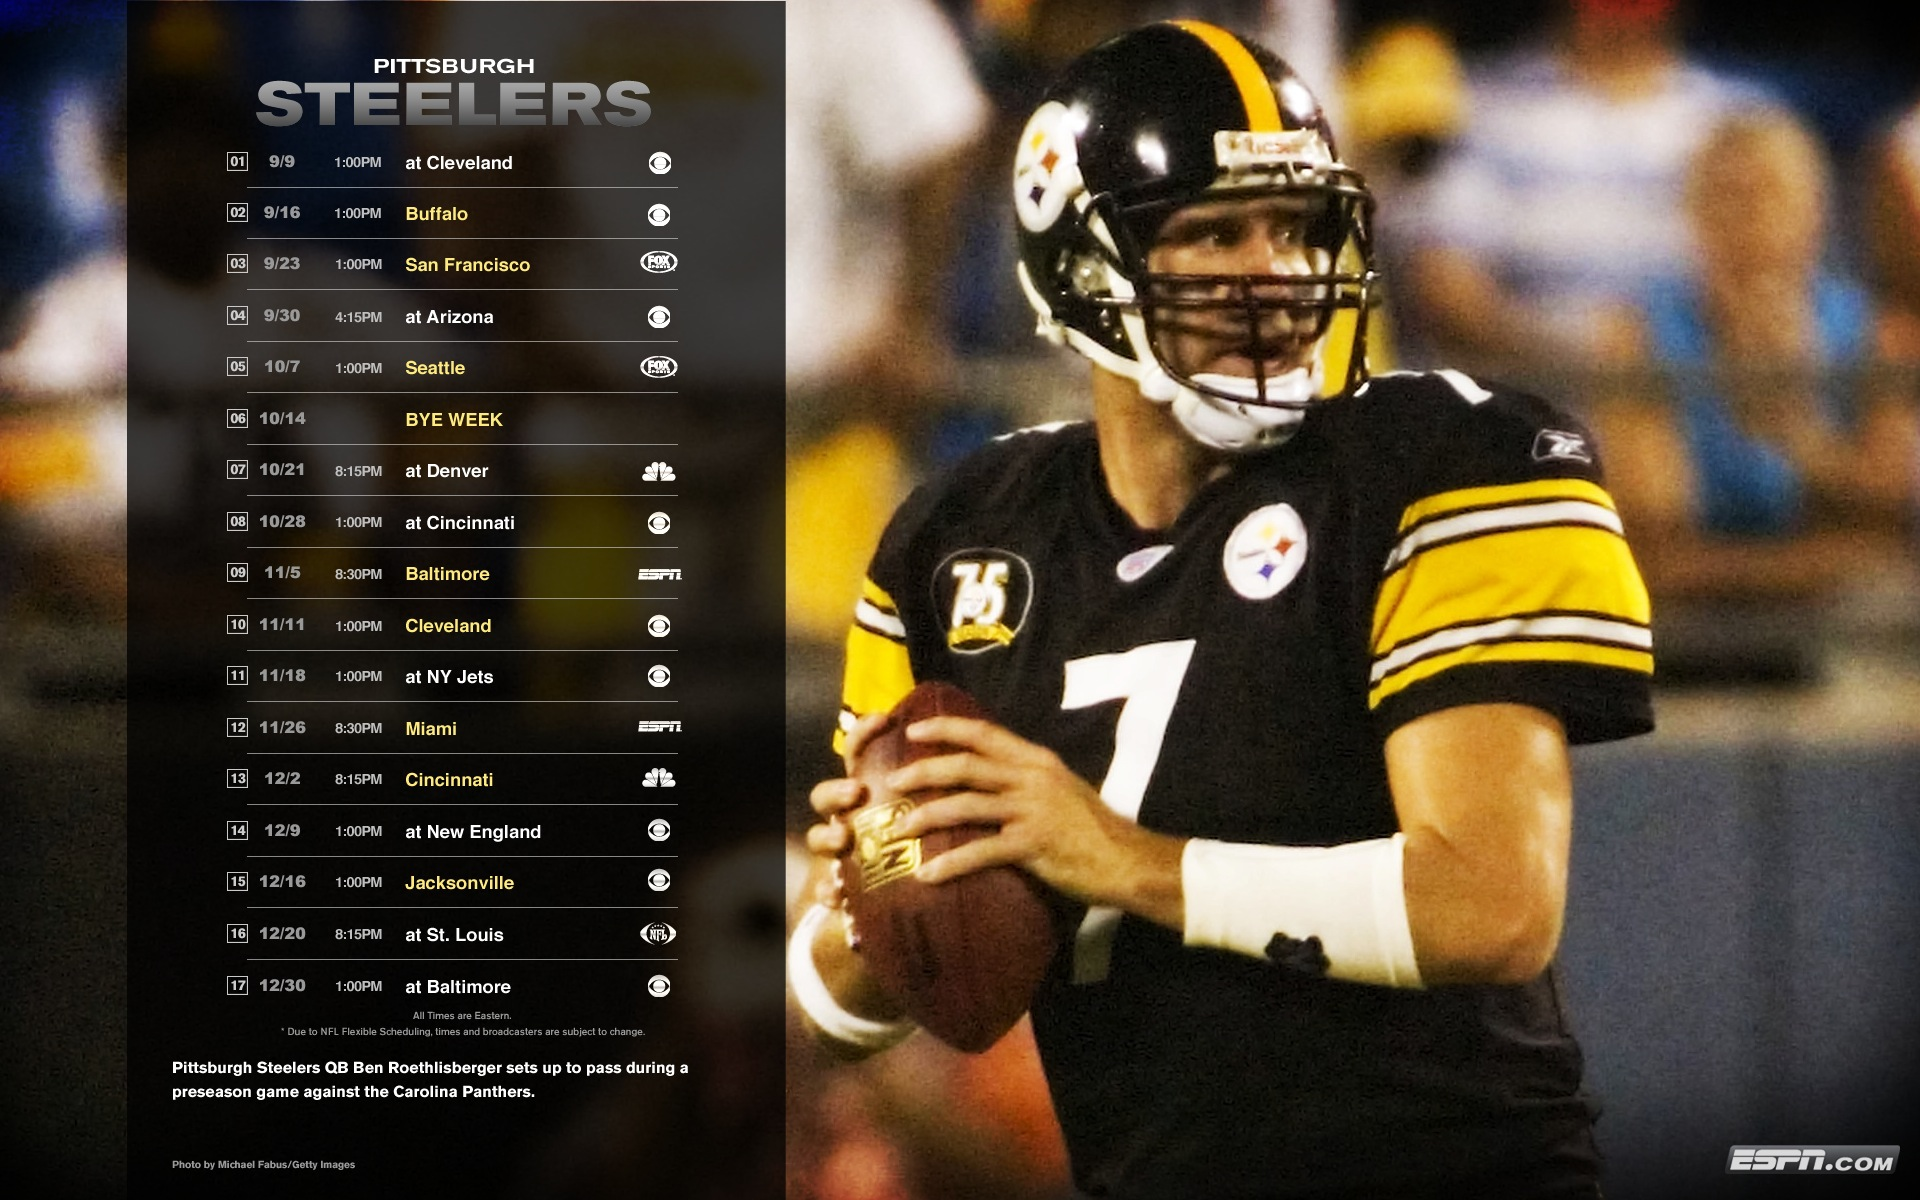 Pittsburgh Steelers Wallpaper Football Background cute Wallpapers 1920x1200